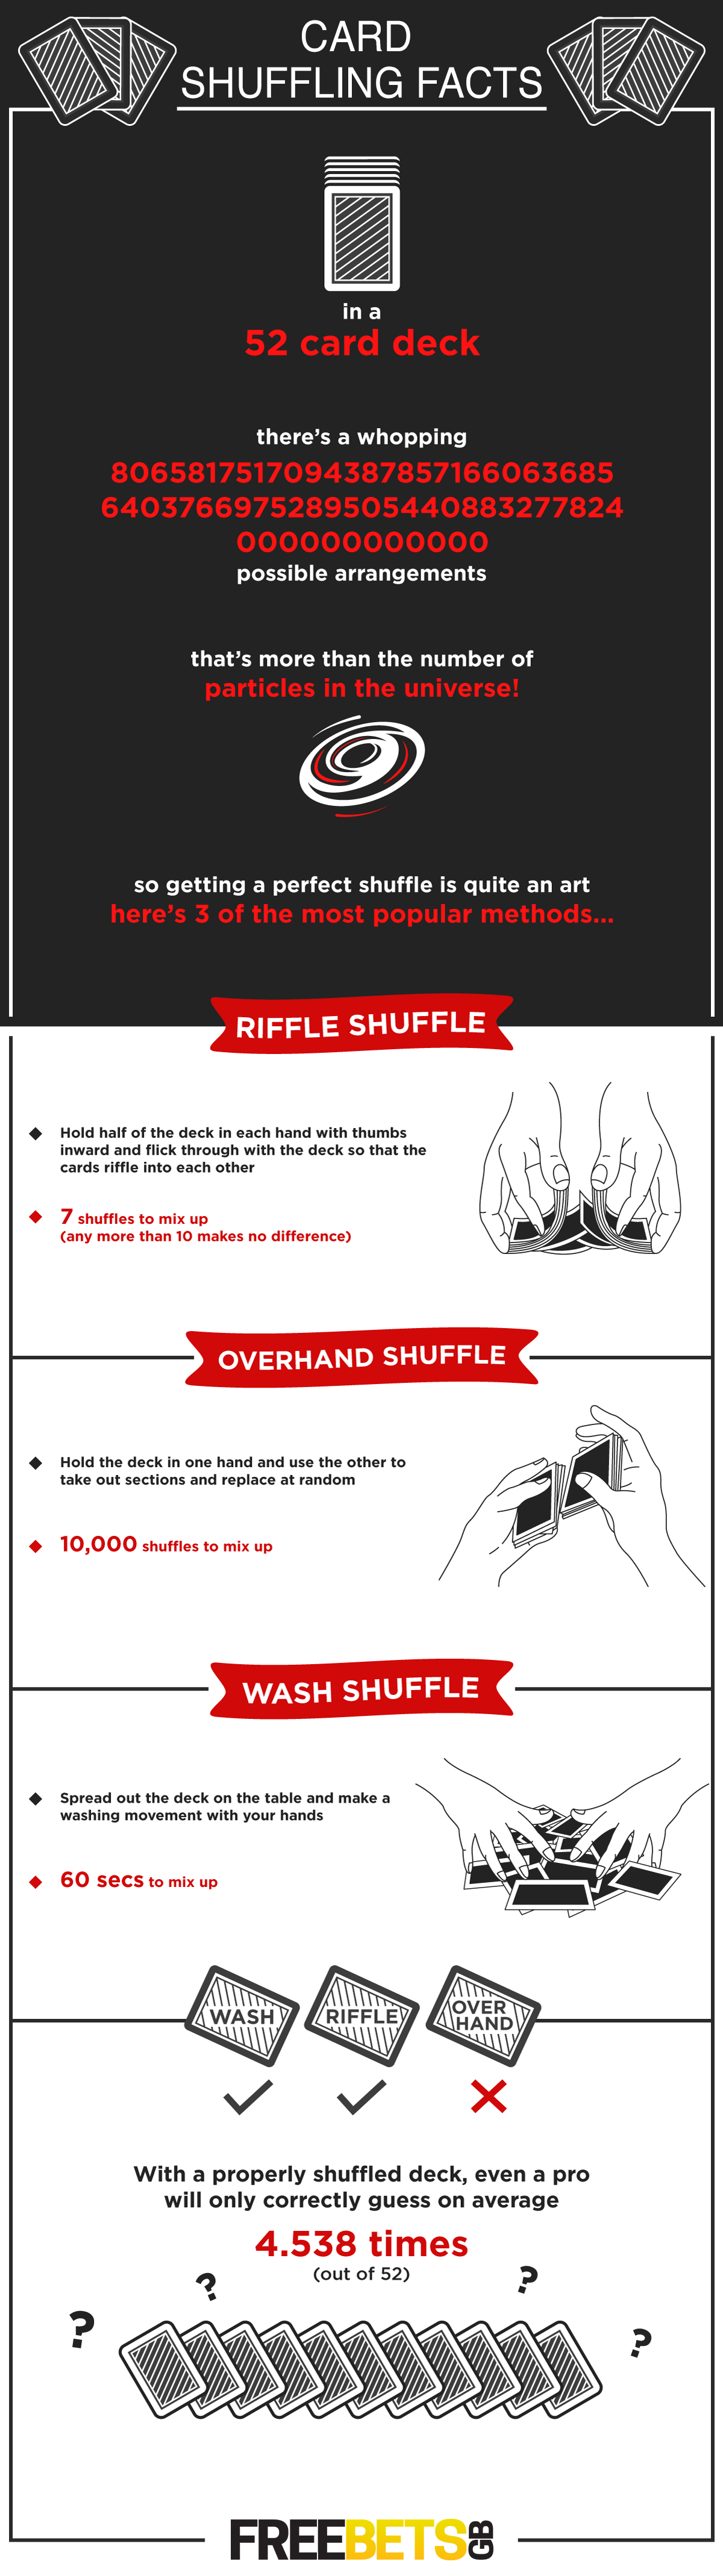 Infographic : Card Shuffling Facts